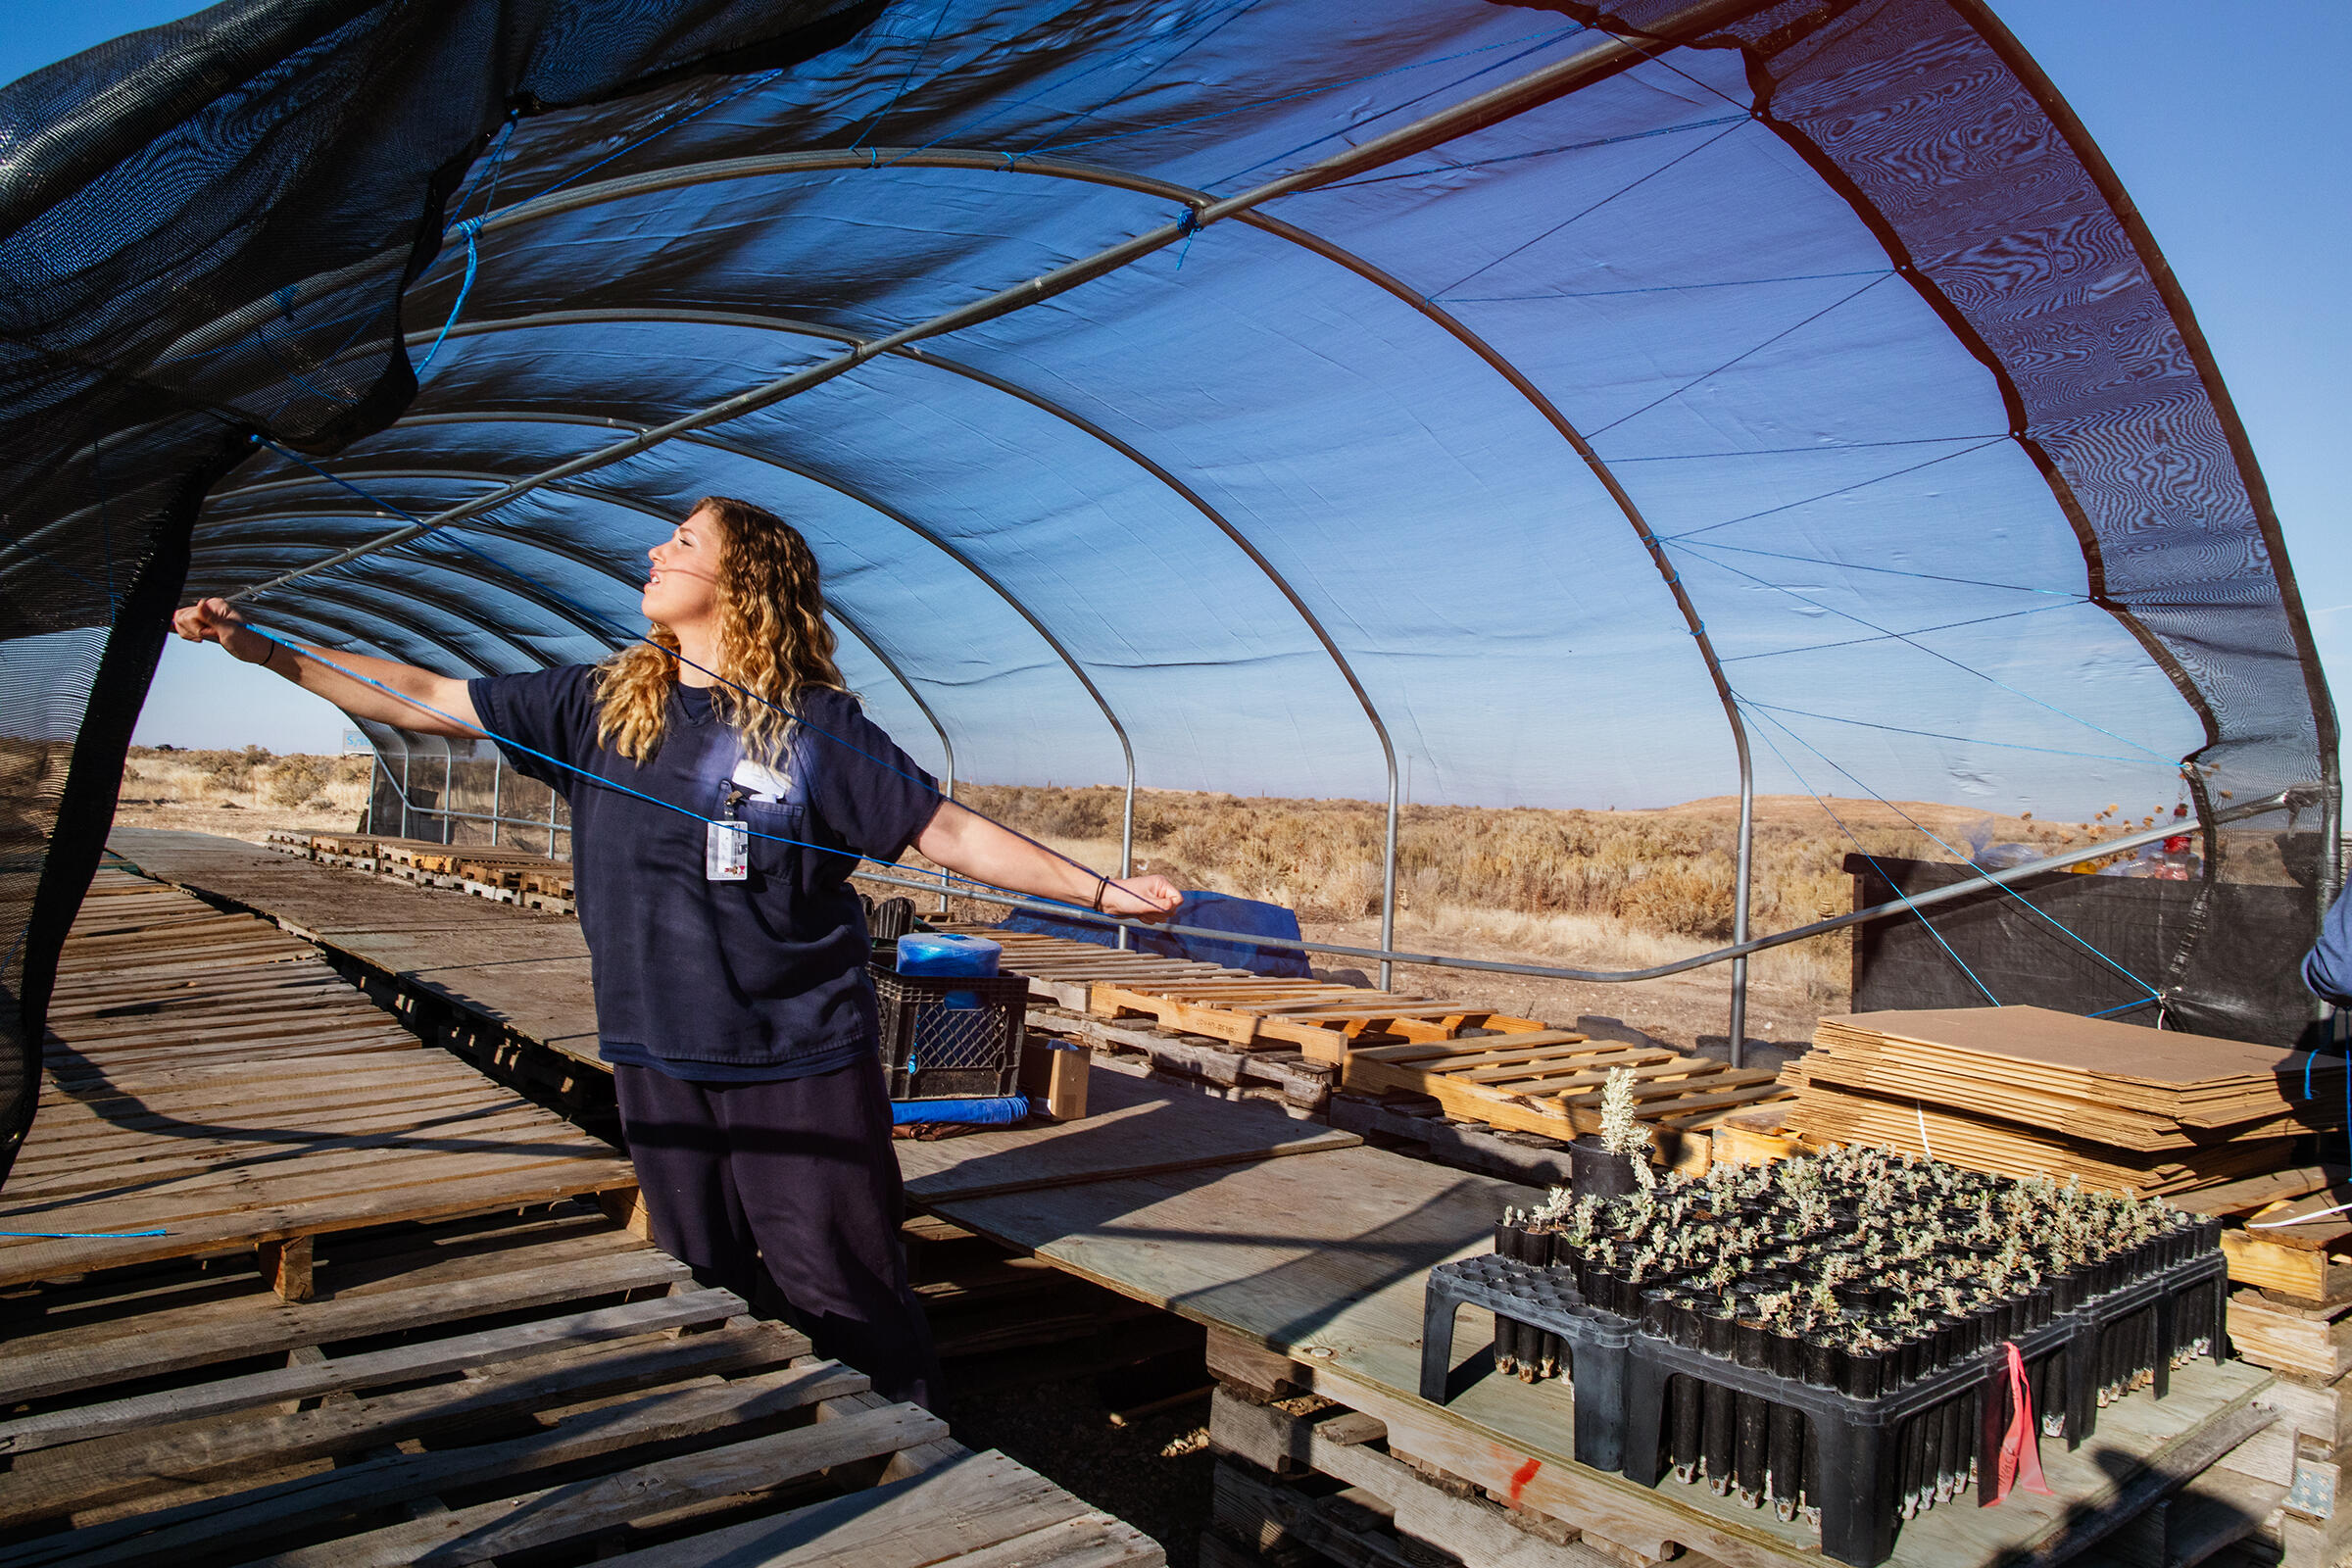 After a successful growing season at the South Boise Women's Correctional Center, Kaitlin Derby helps to take down the the hoop house for winter. Mike Fernandez/Audubon